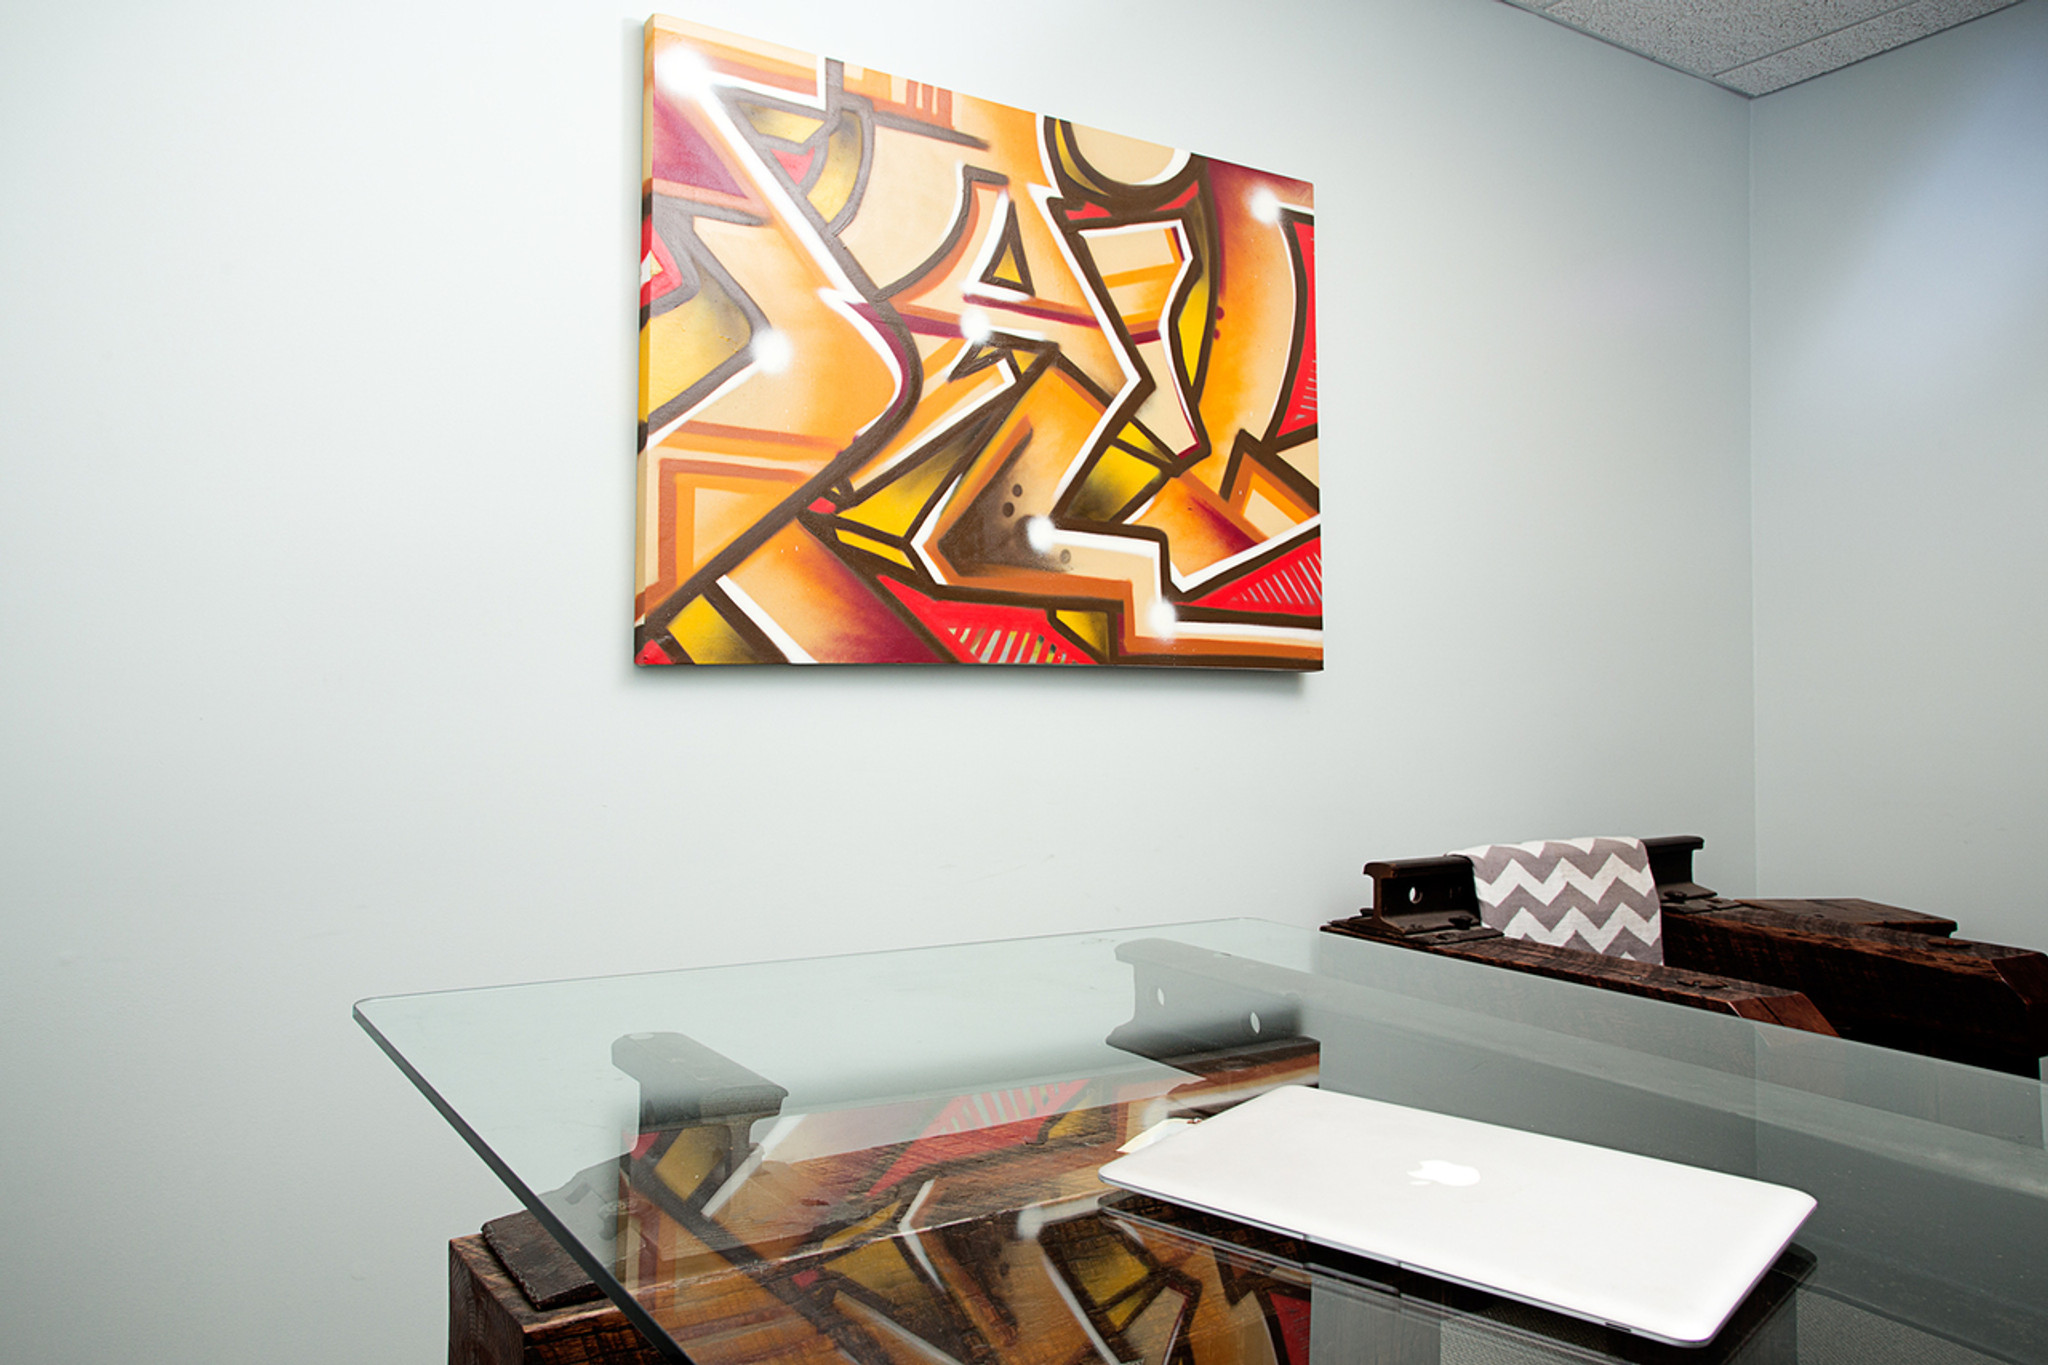 original urban art indoor graffiti wall hanging canvas in executive office one-of-a-kind artwork